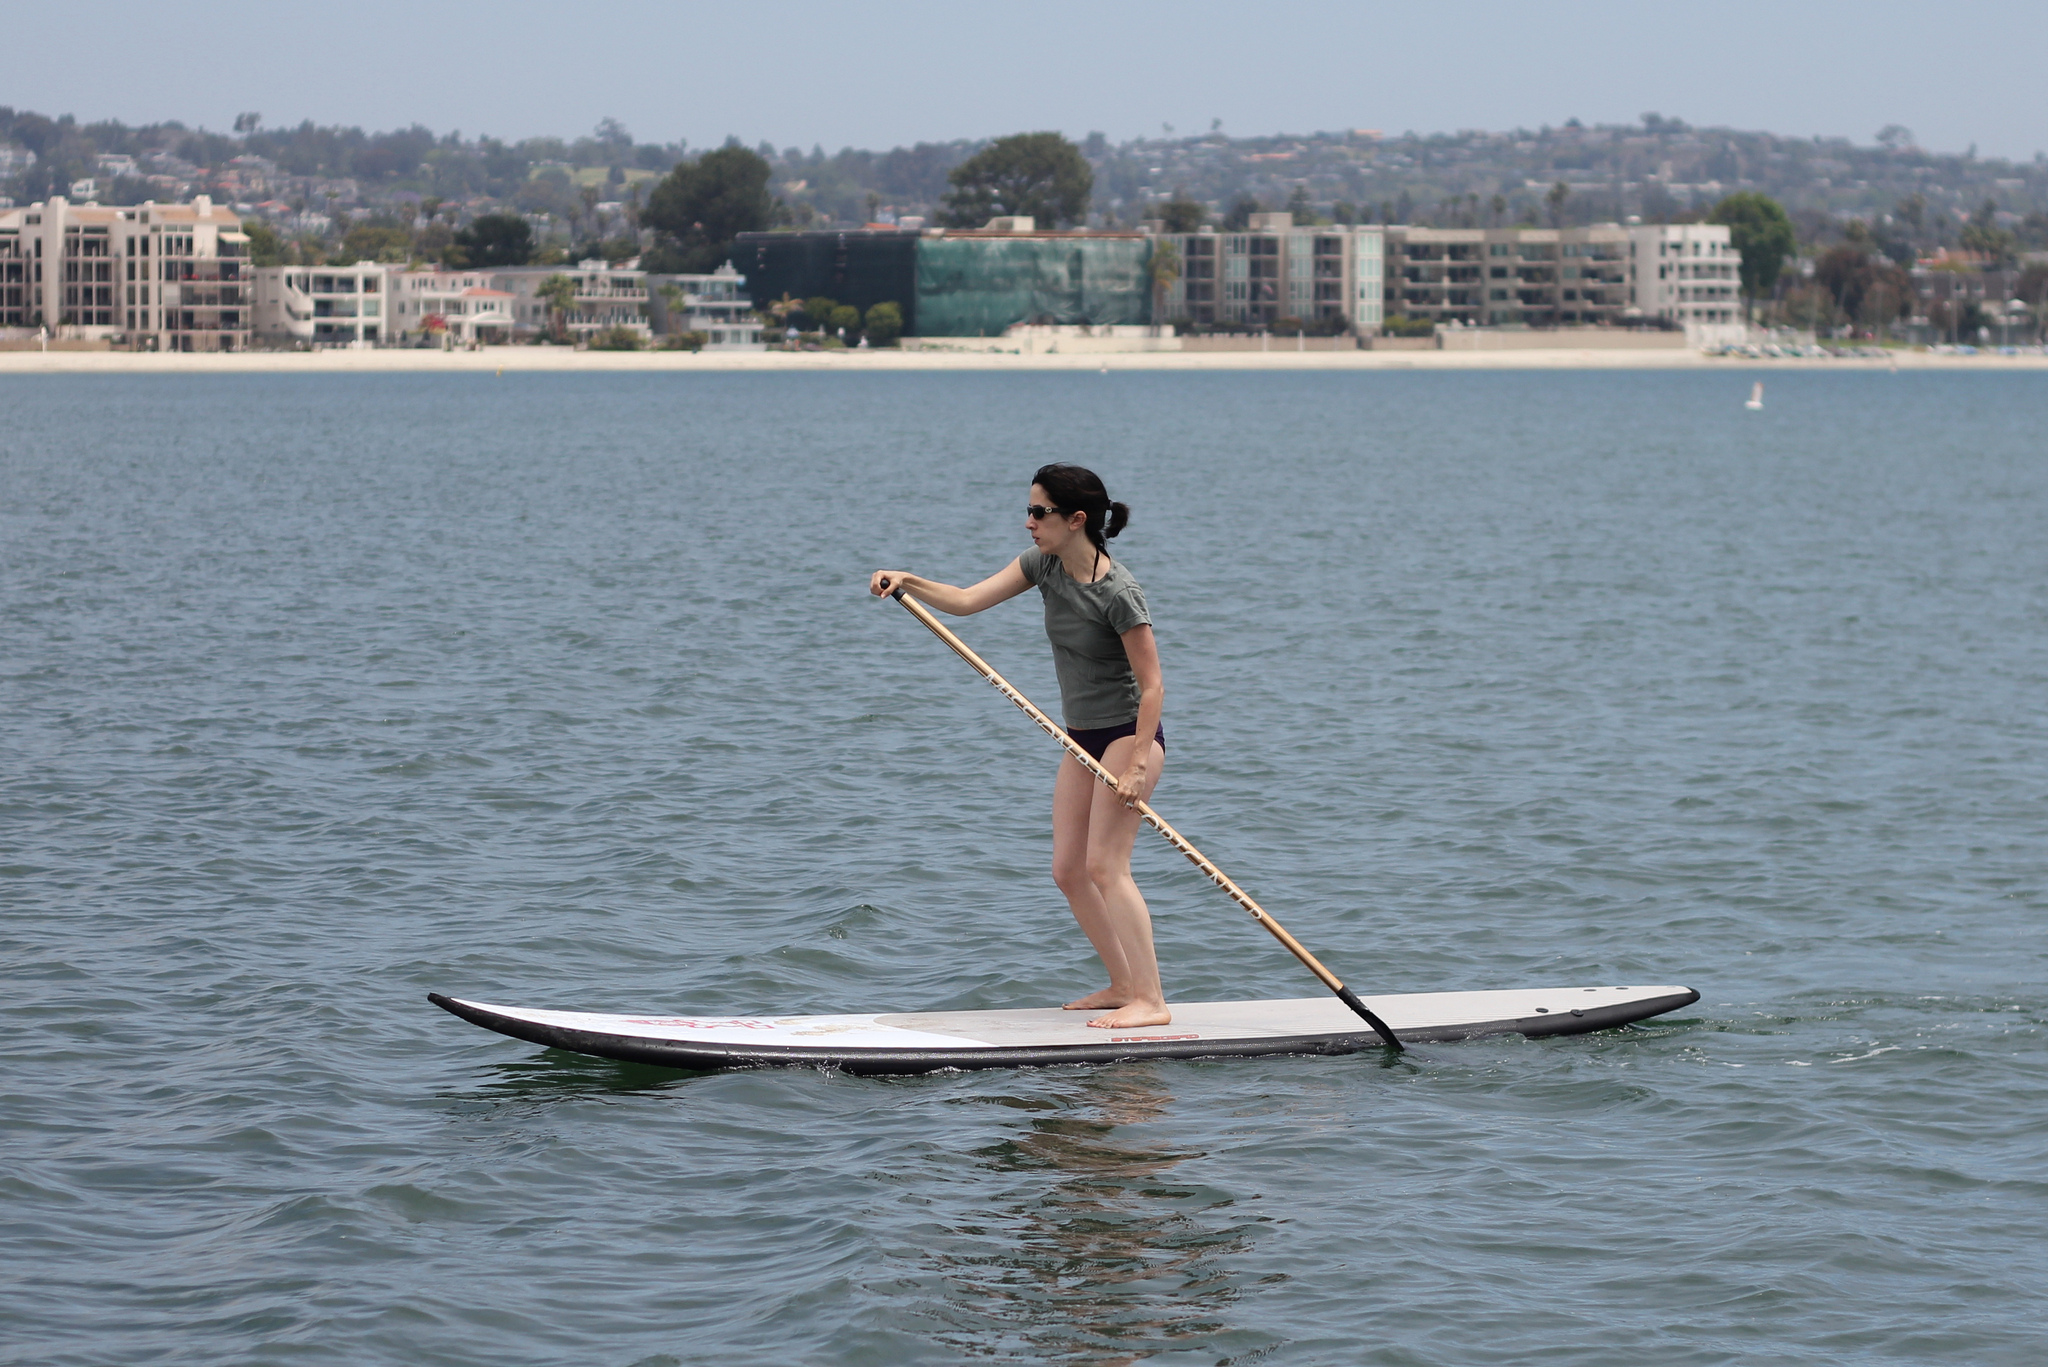 Get Wet and Stay Safe when you go paddleboarding this summer